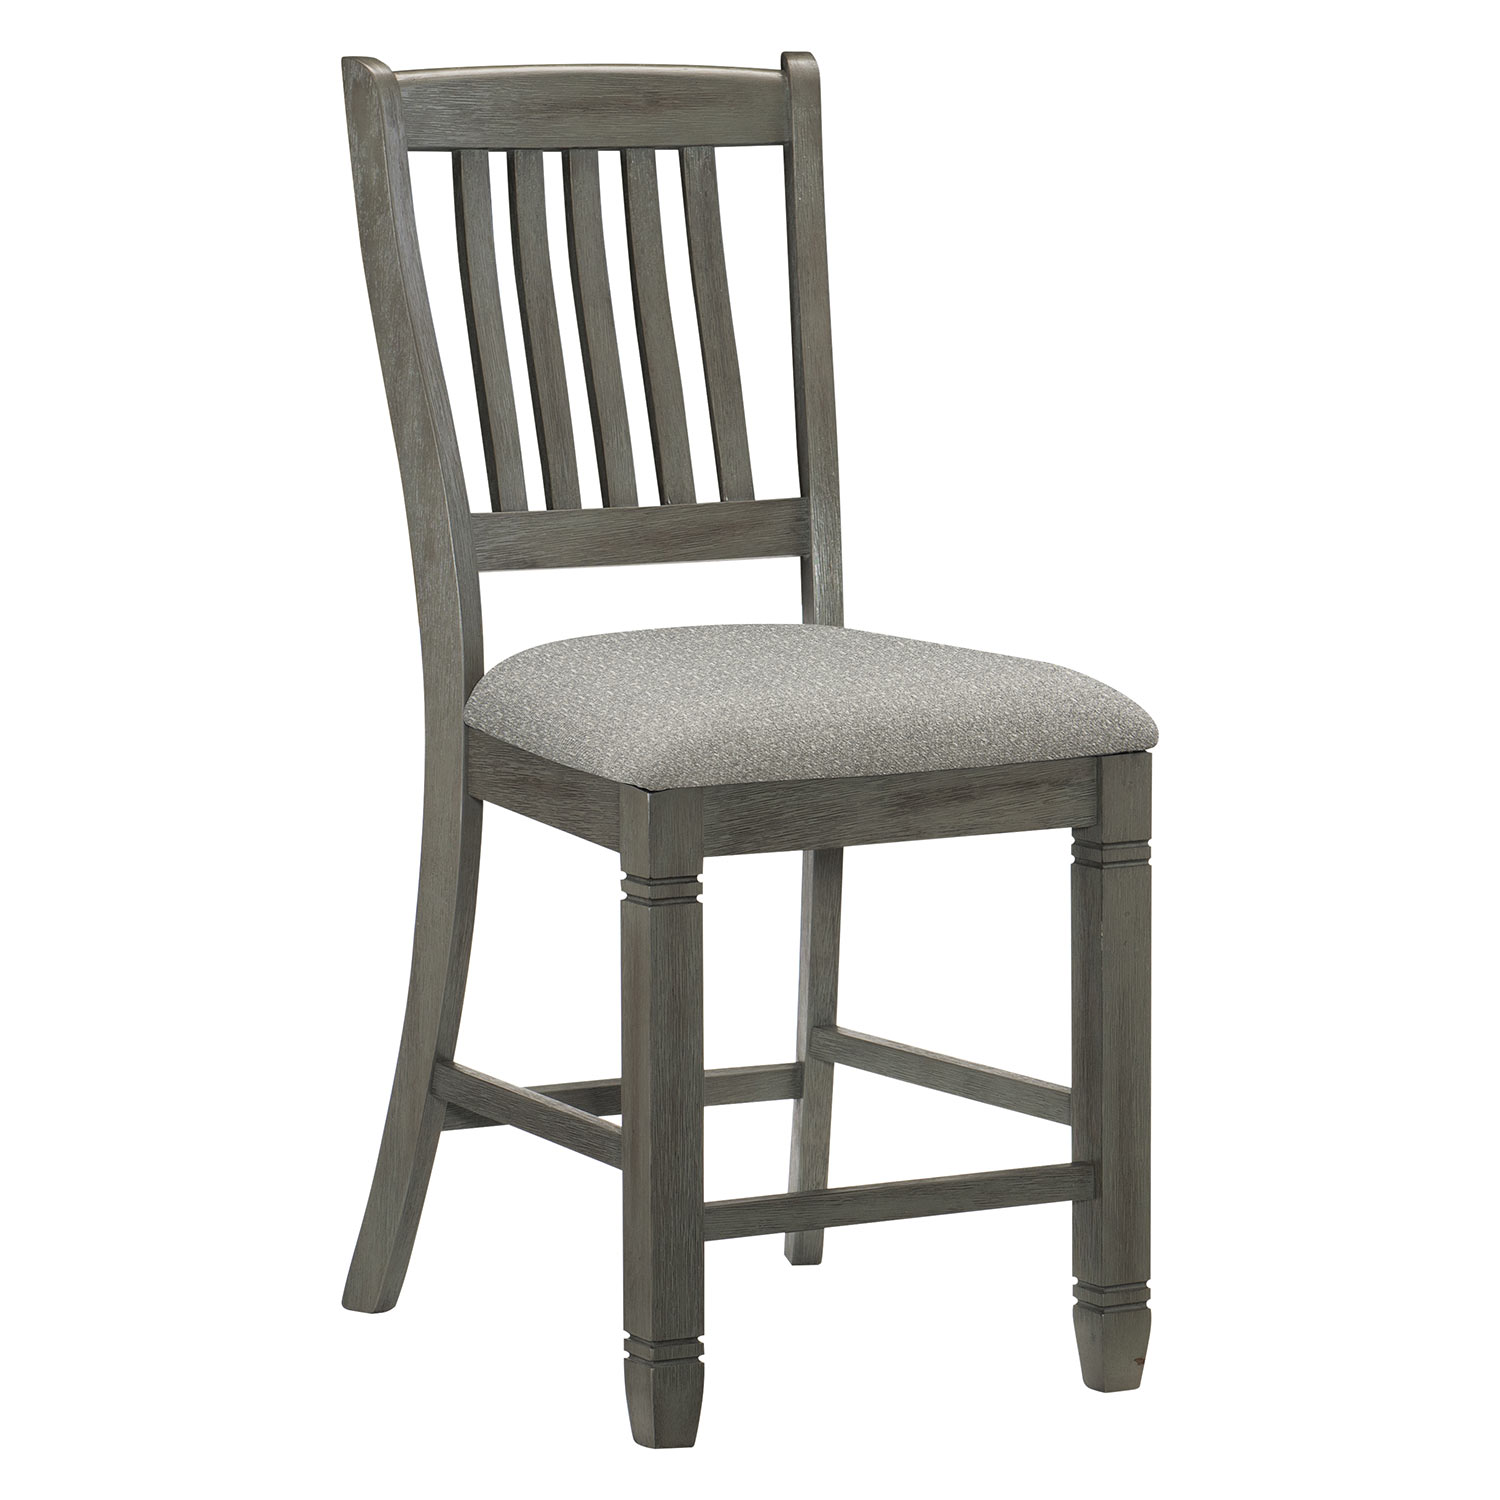 Homelegance Granby Counter Height Chair - Antique Gray and Coffee